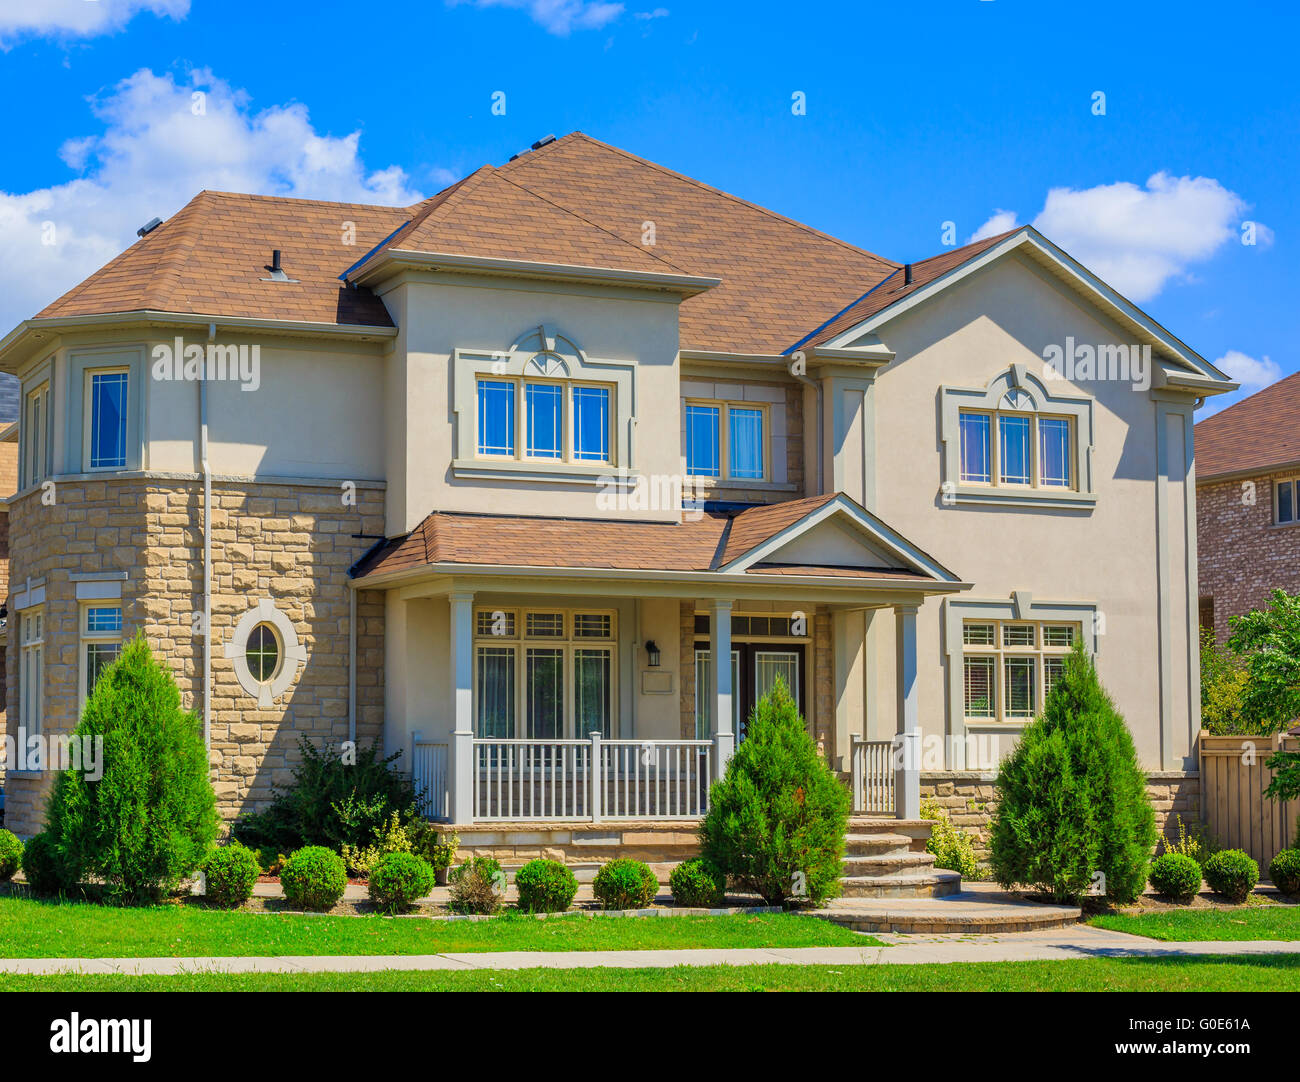 Luxury houses in north america stock photo royalty free for Different types of houses in usa